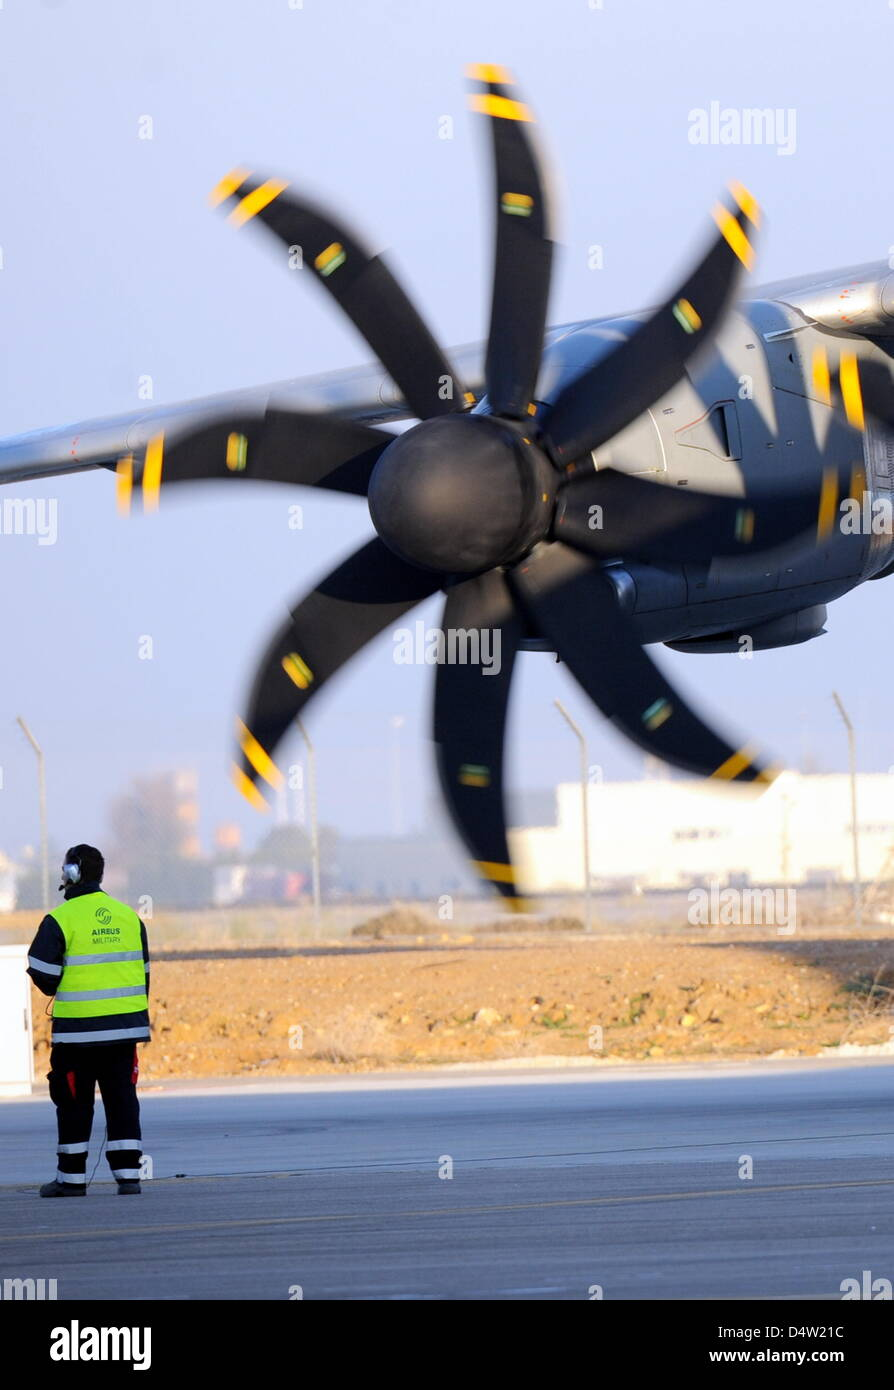 The military Airbus A400M is made ready for its first flight in Sevilla, Spain, 11 December 2009. The four-engined plane took off in front of 2500 guests at quarter past ten a.m. in beautiful sunshine. The maiden flight had originally been planned for early 2008. Photo: MAURIZIO GAMBARINI Stock Photo